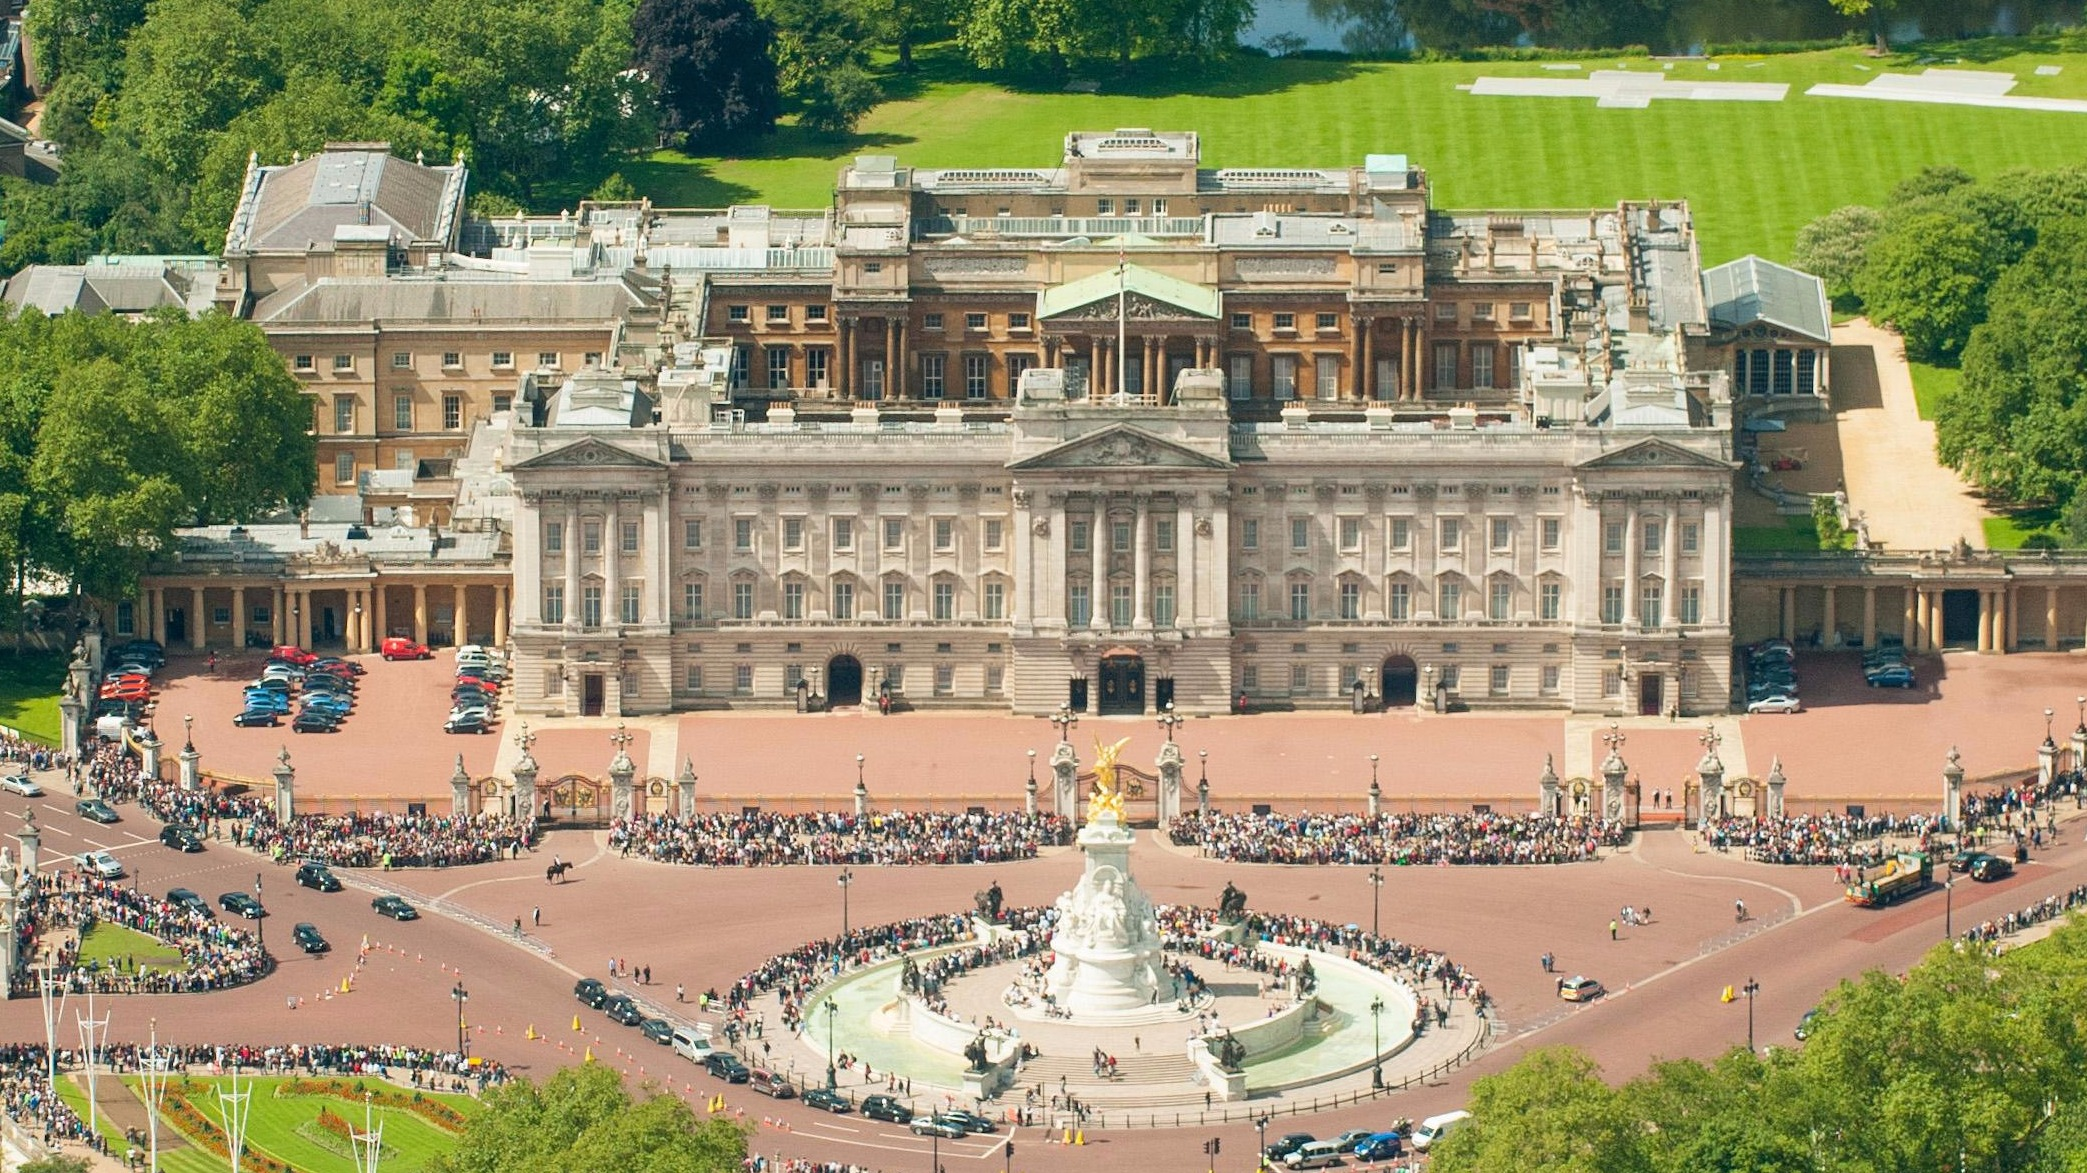 buckingham palace district six character analysis Buckingham palace: district 6 we will write a custom essay sample on when the characters of district 6 are analysed superficially they are not admirable mary is a prostitute zoot has a criminal record and beats people up.